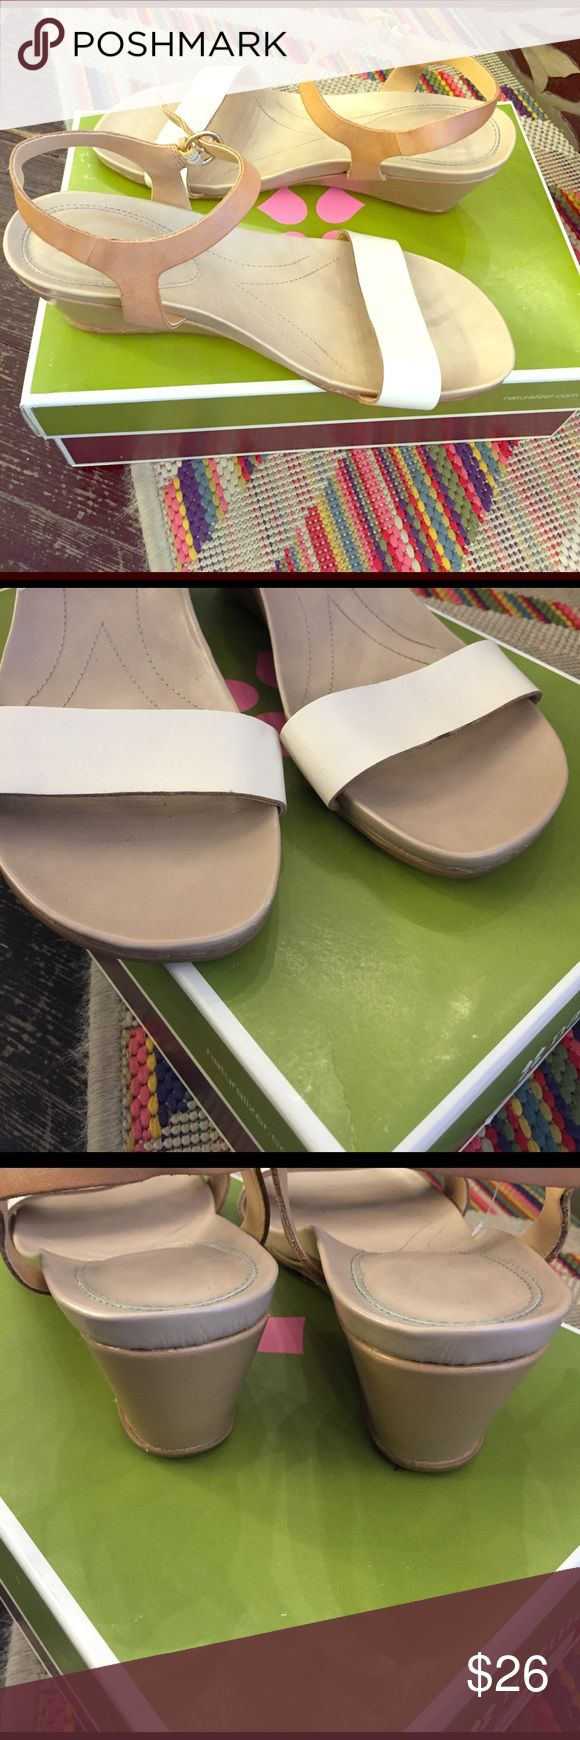 Neutral wedge Cream and tan leather wedge sandals. Will never go out of style. Leather footbed. In very good clean condition. Naturalizer Shoes Wedges